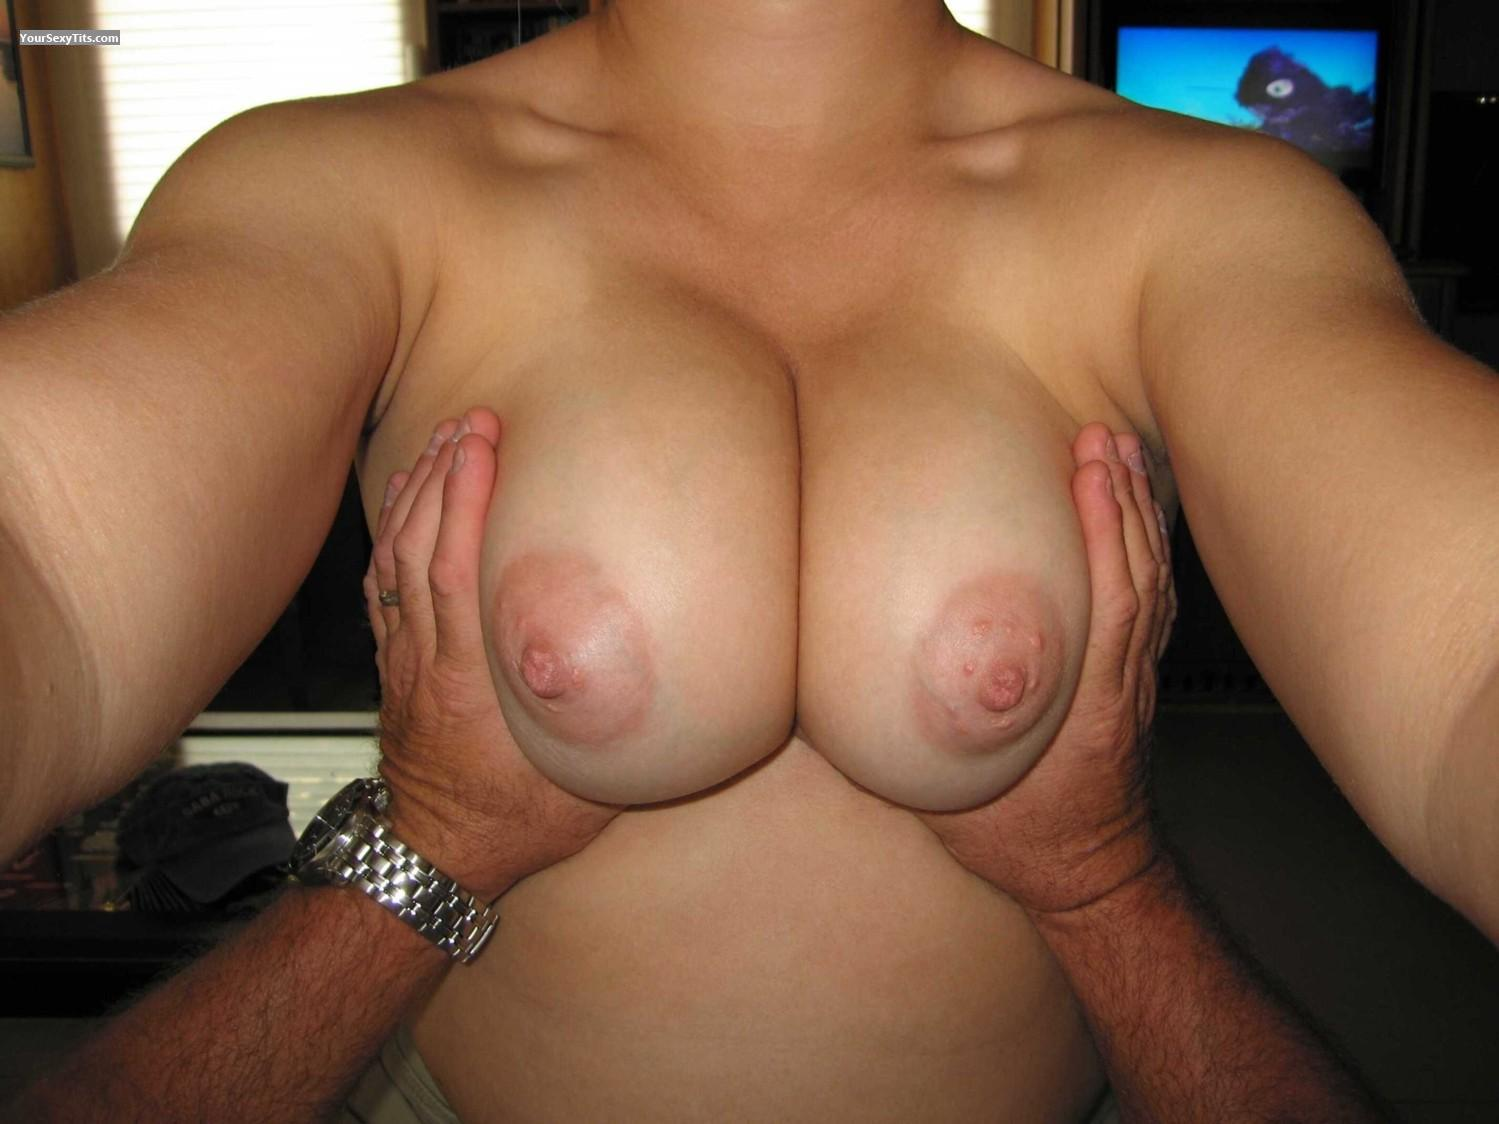 Tit Flash: My Medium Tits (Selfie) - Faans Flasher from United States